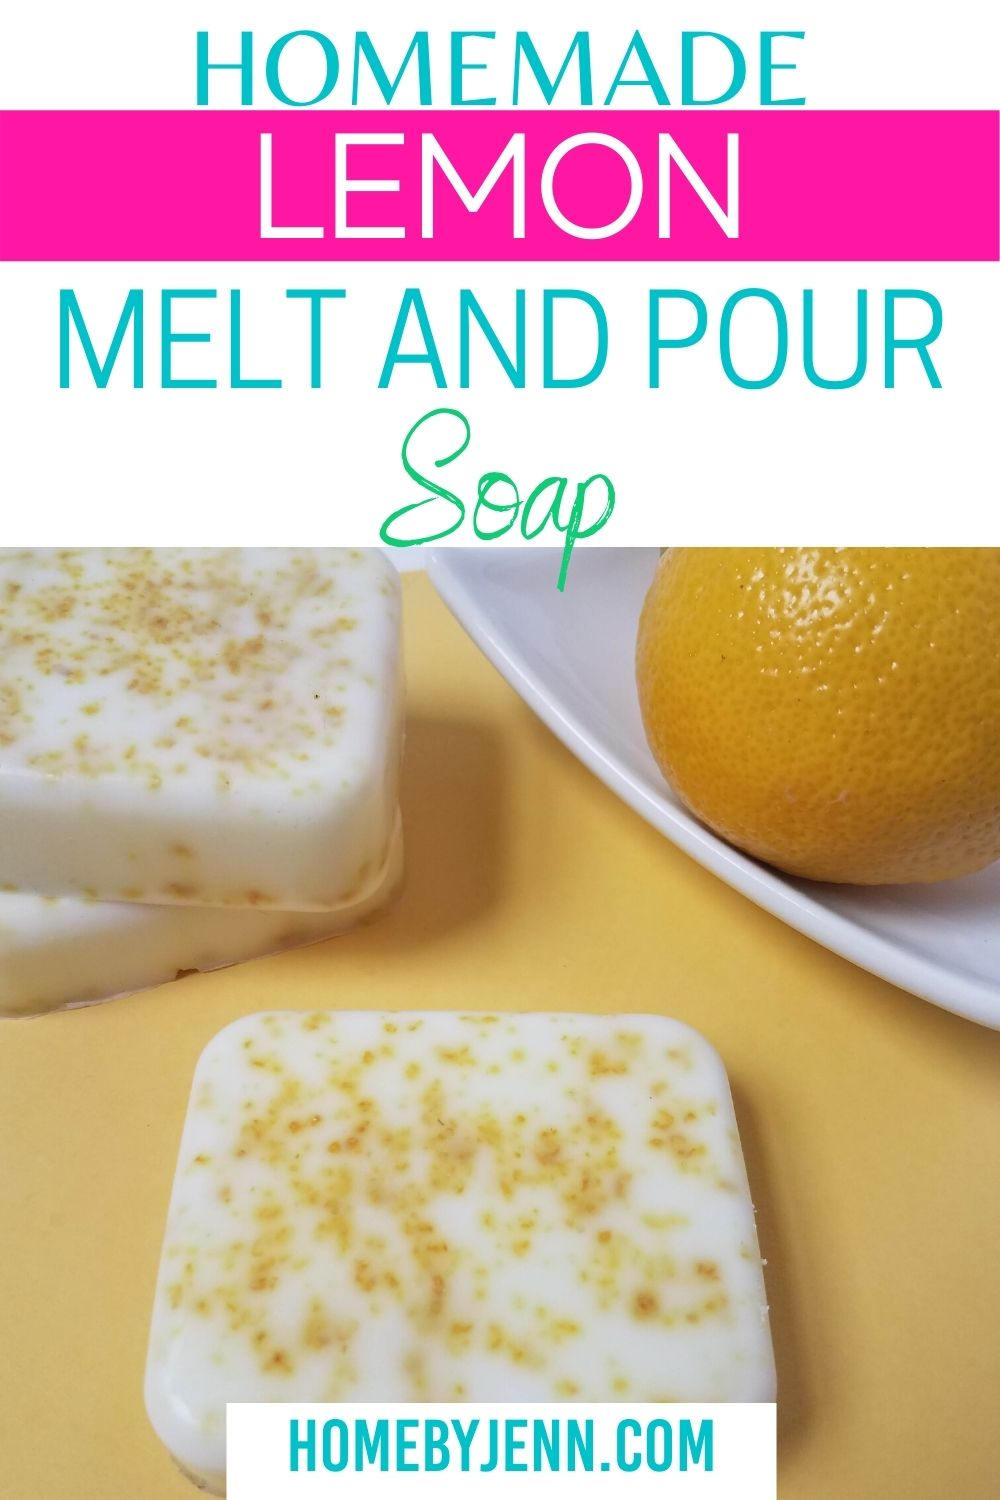 This melt and pour soap is super simple and easy to do! With just a few ingredients, you can make this for your home as well. Who doesn't love the scent of homemade lemon soap? #DIY #homemade #meltandpoursoap #lemon via @homebyjenn